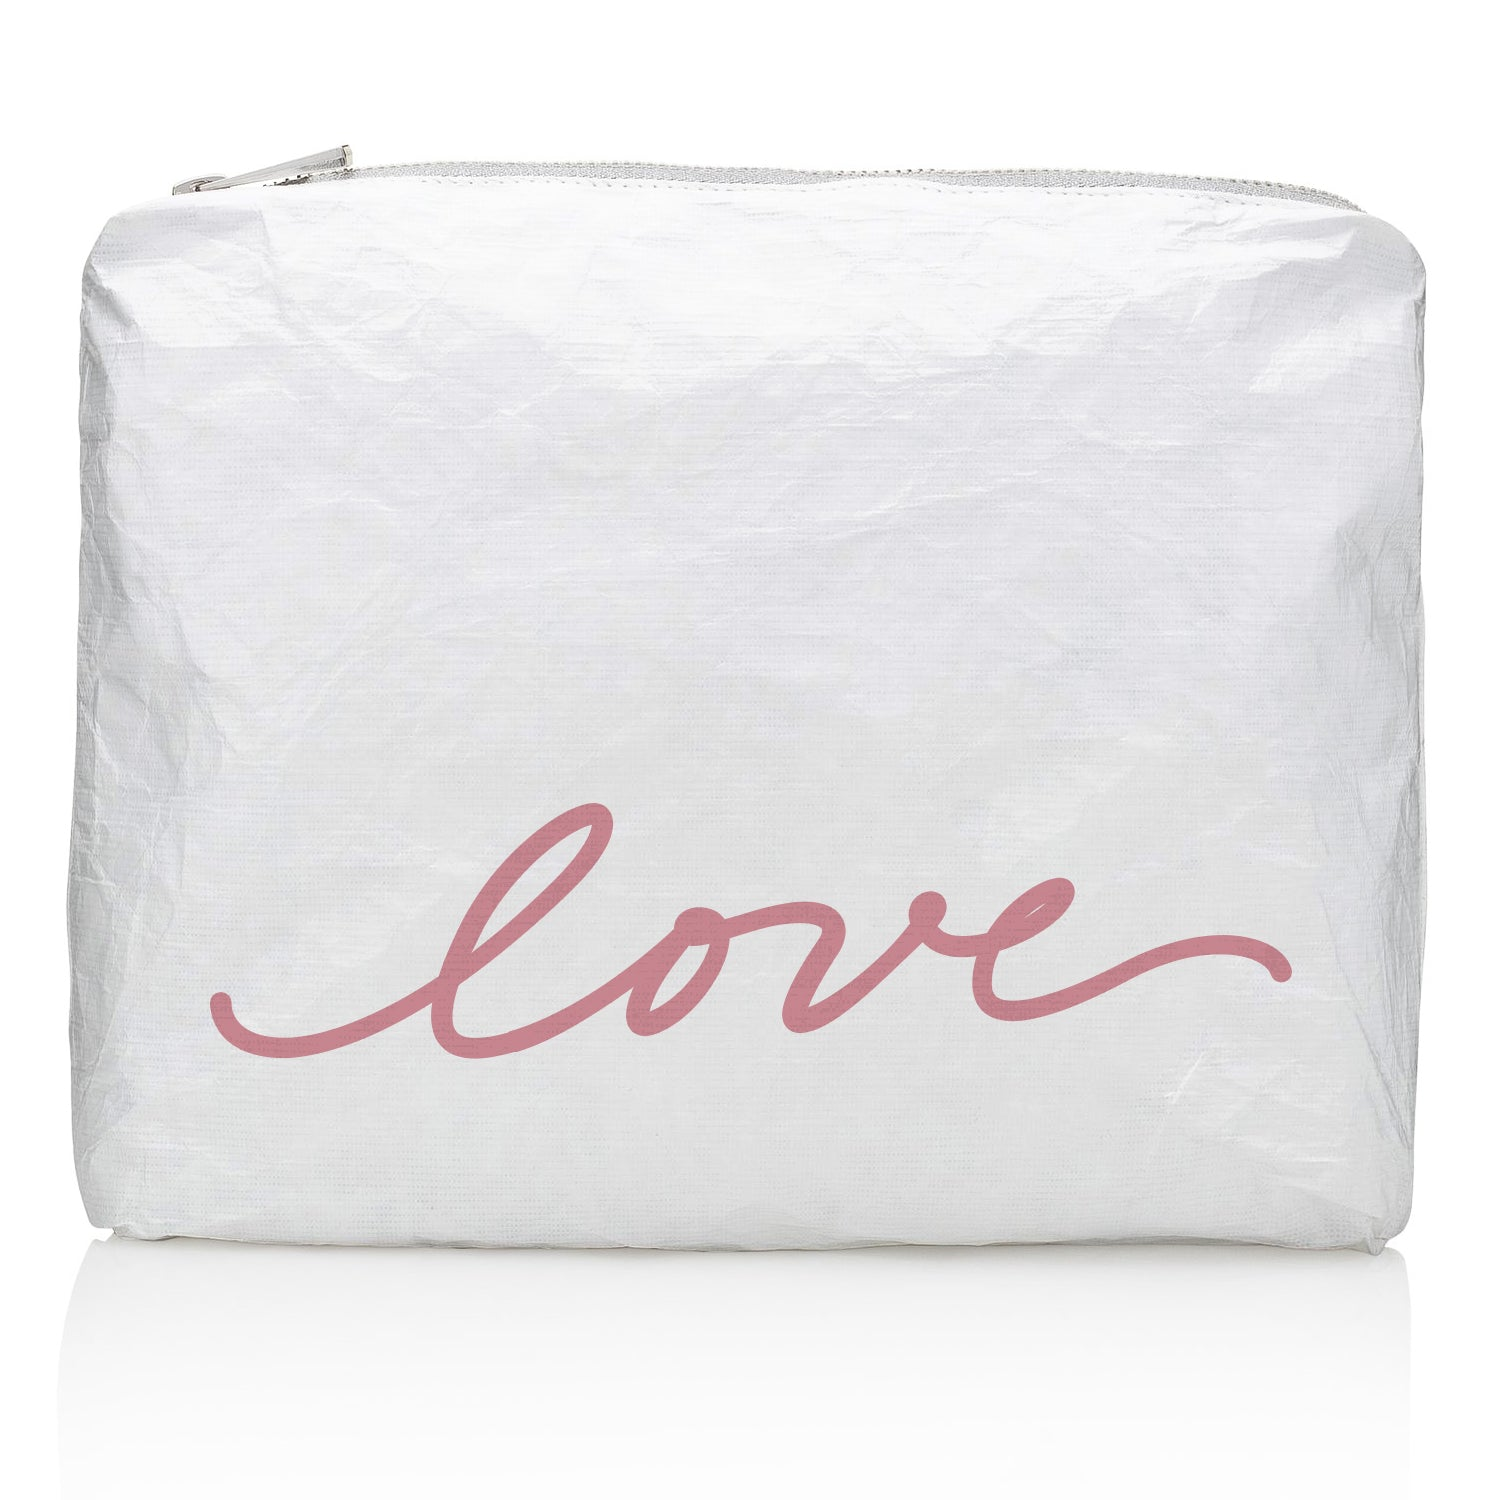 "Medium Pack - Shimmer White with Pink Script ""love"""